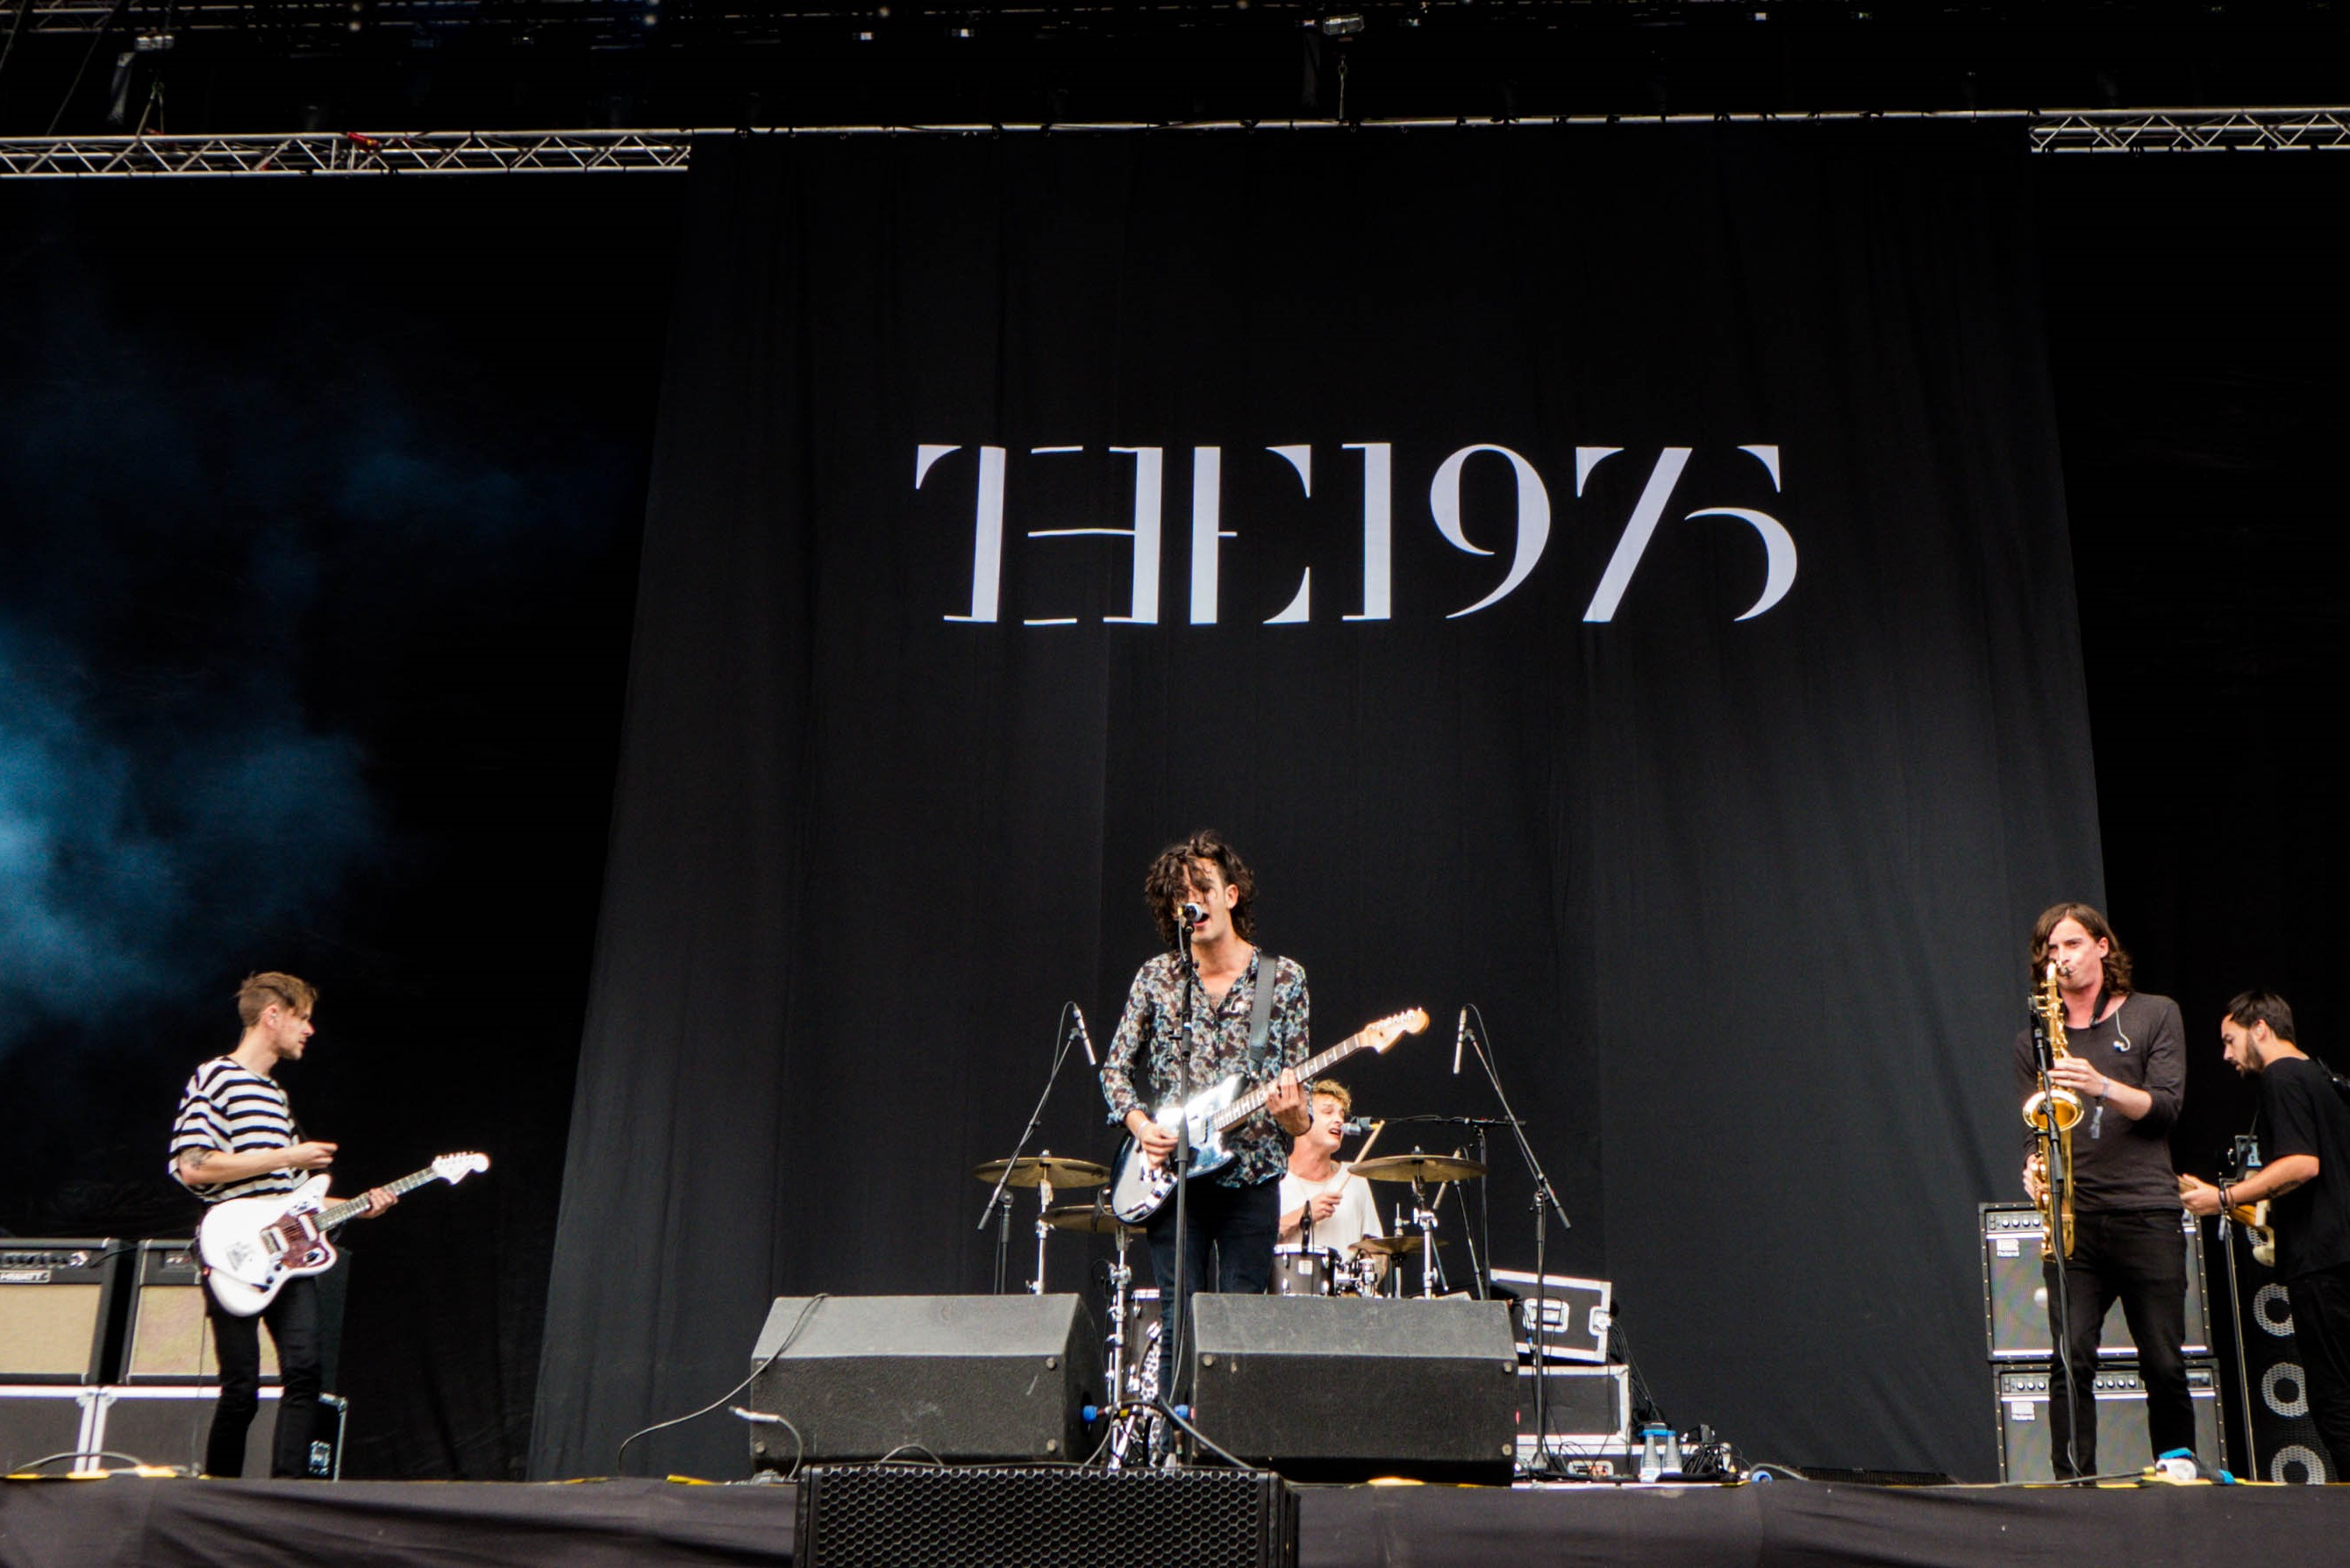 The 1975 Bellahouston Park 25th August 2019